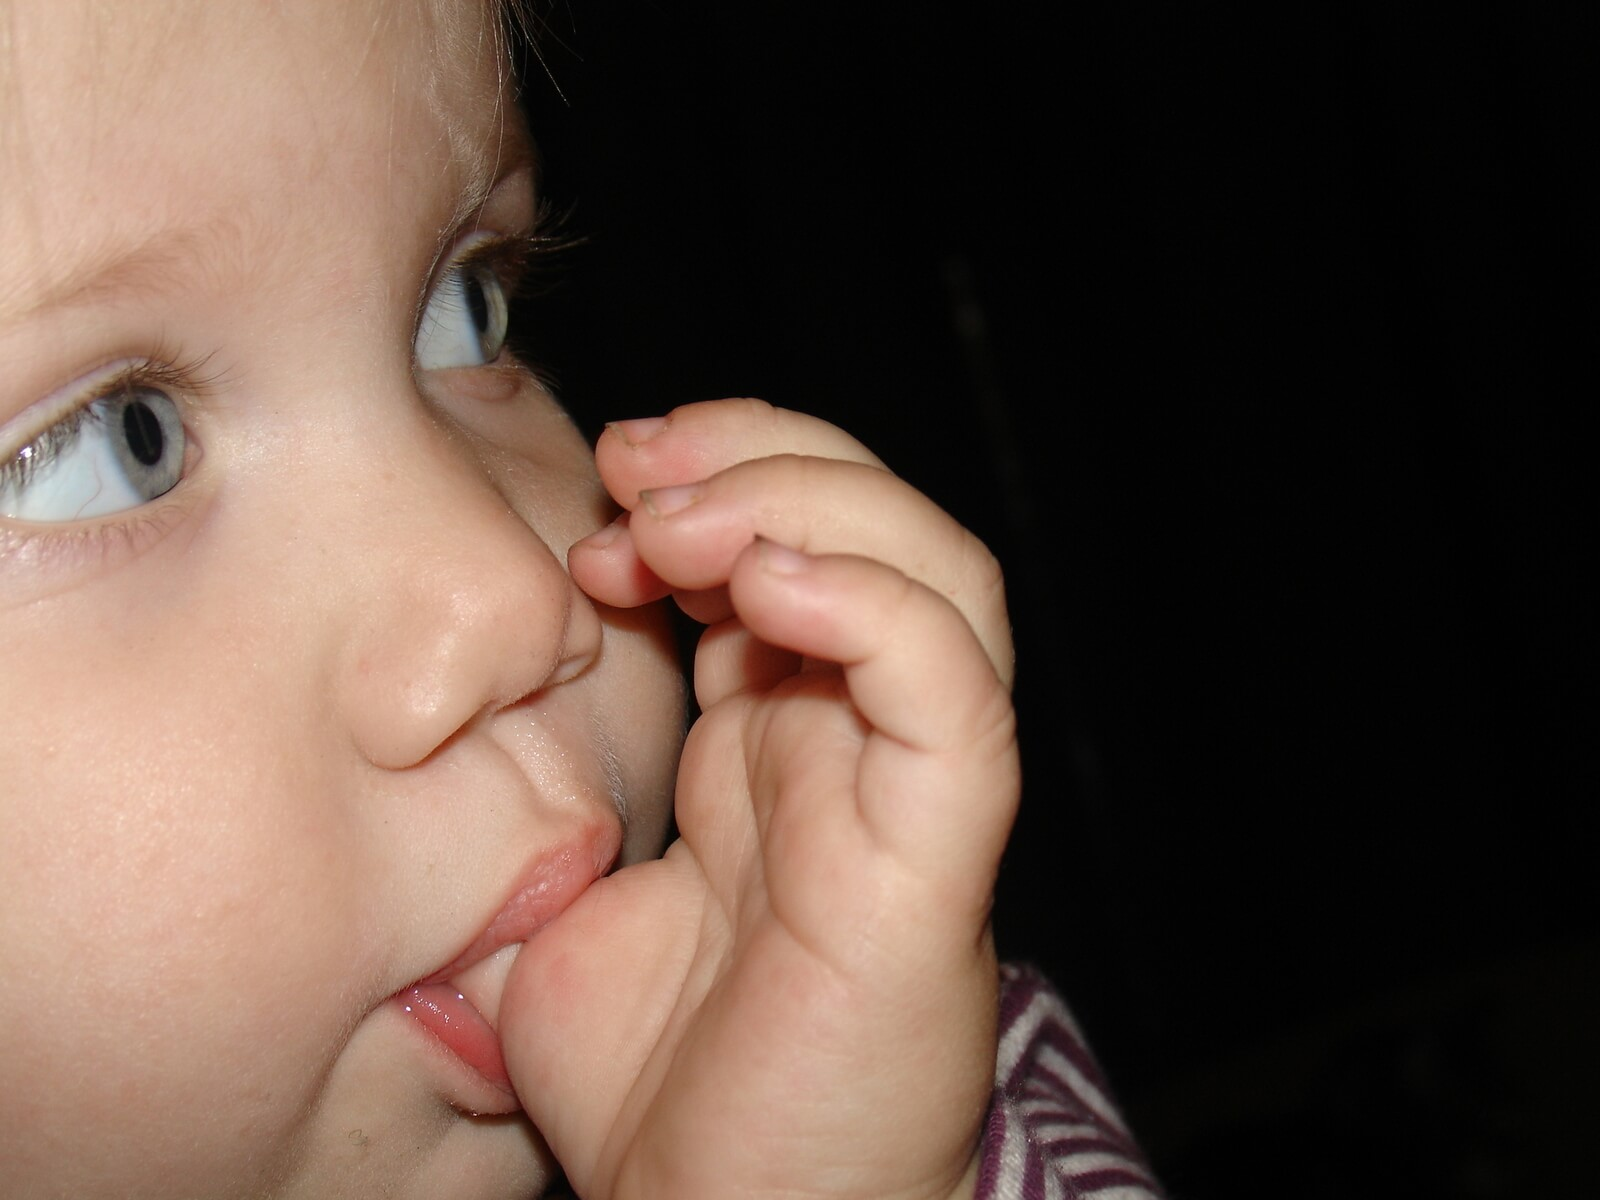 baby thumbsucking may result in long term effect on childrens teeth